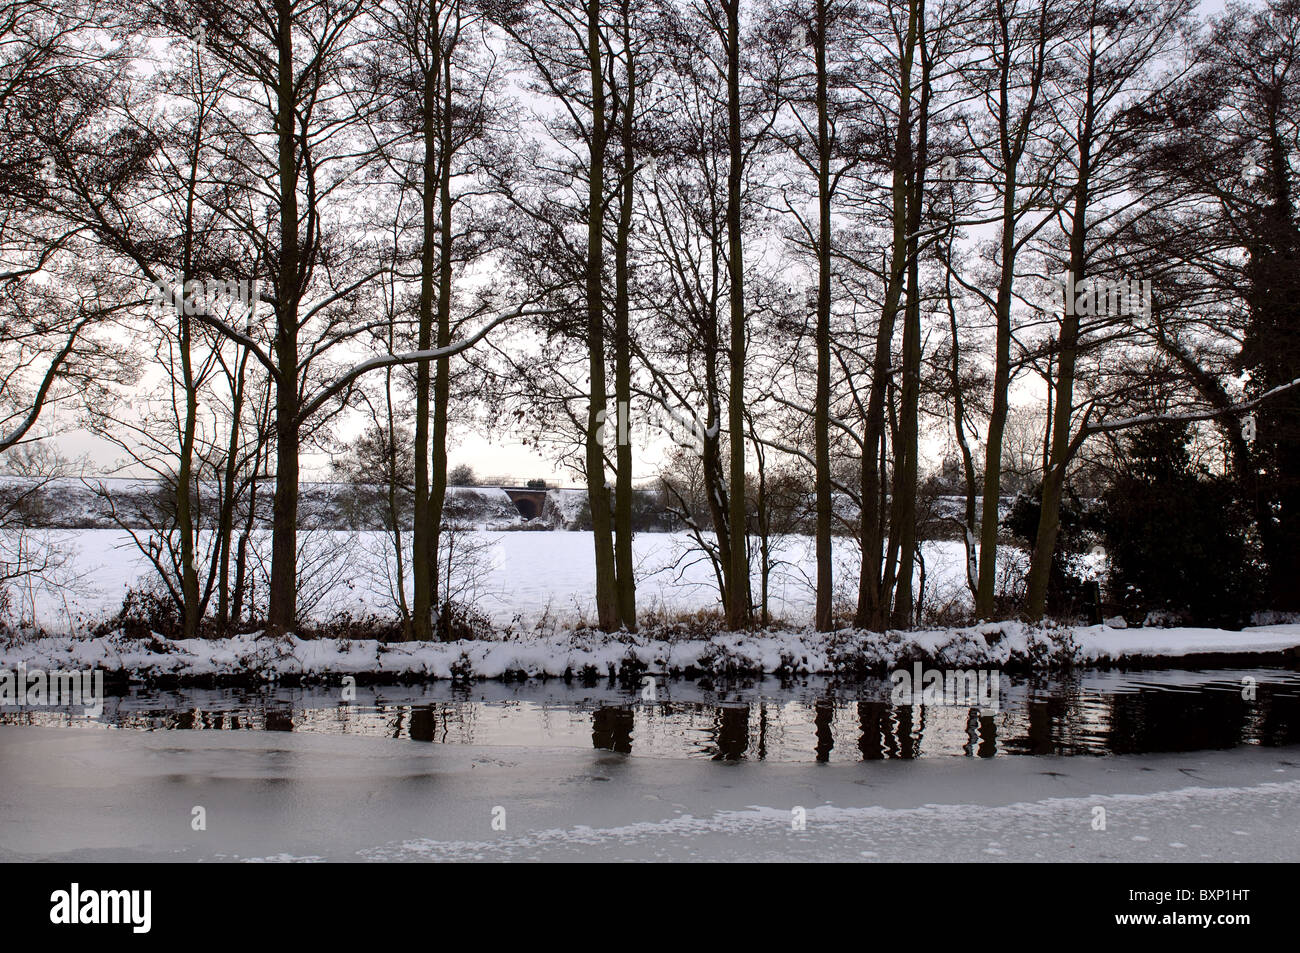 Alder trees by frozen canal in winter - Stock Image